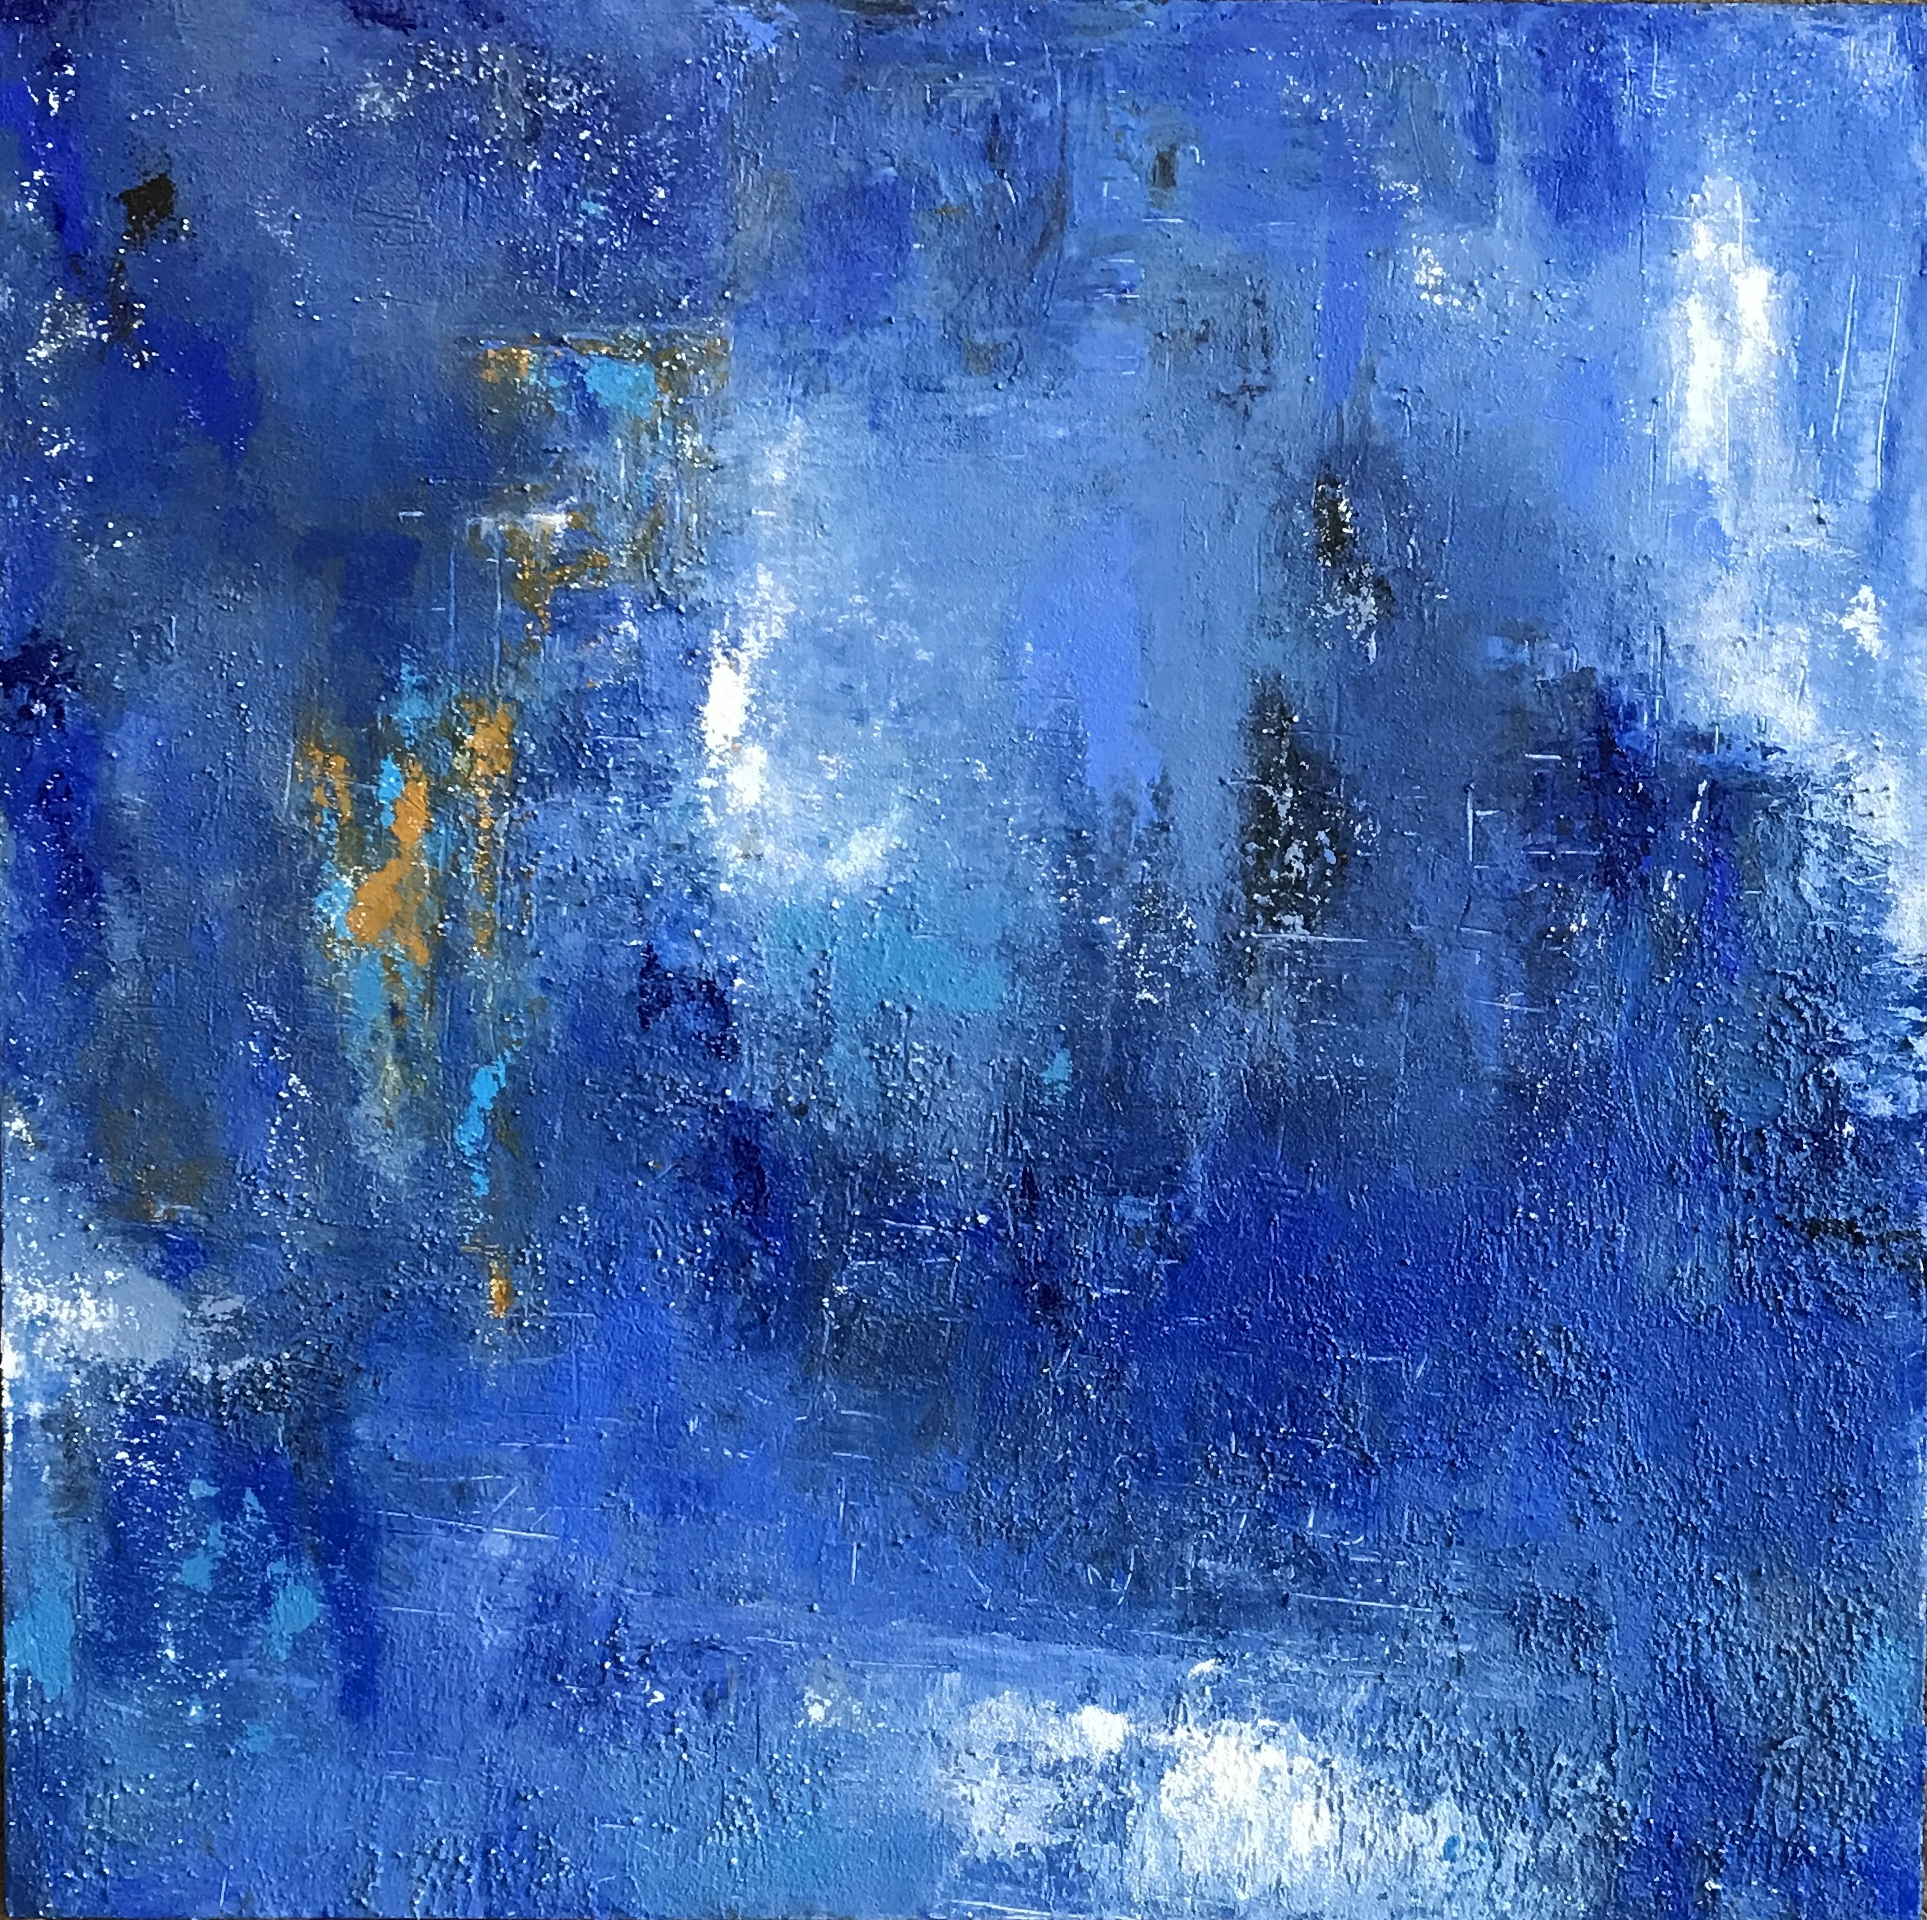 Catalina Blue (2018)